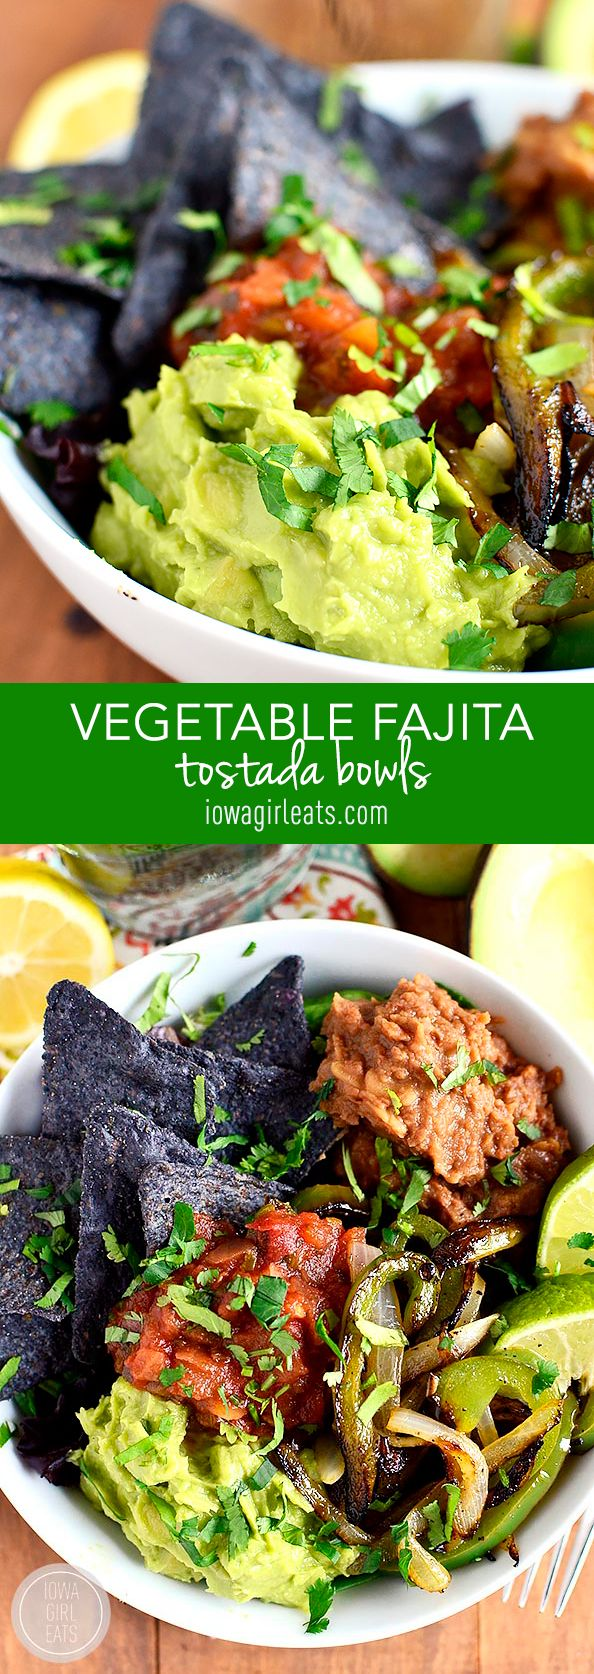 Vegetable Fajita Tostada Bowls are a mix of vegetable fajitas and filling tostadas. Fresh, healthy, and ready in 20 minutes! #glutenfree #dairyfree #vegetarian | iowagirleats.com